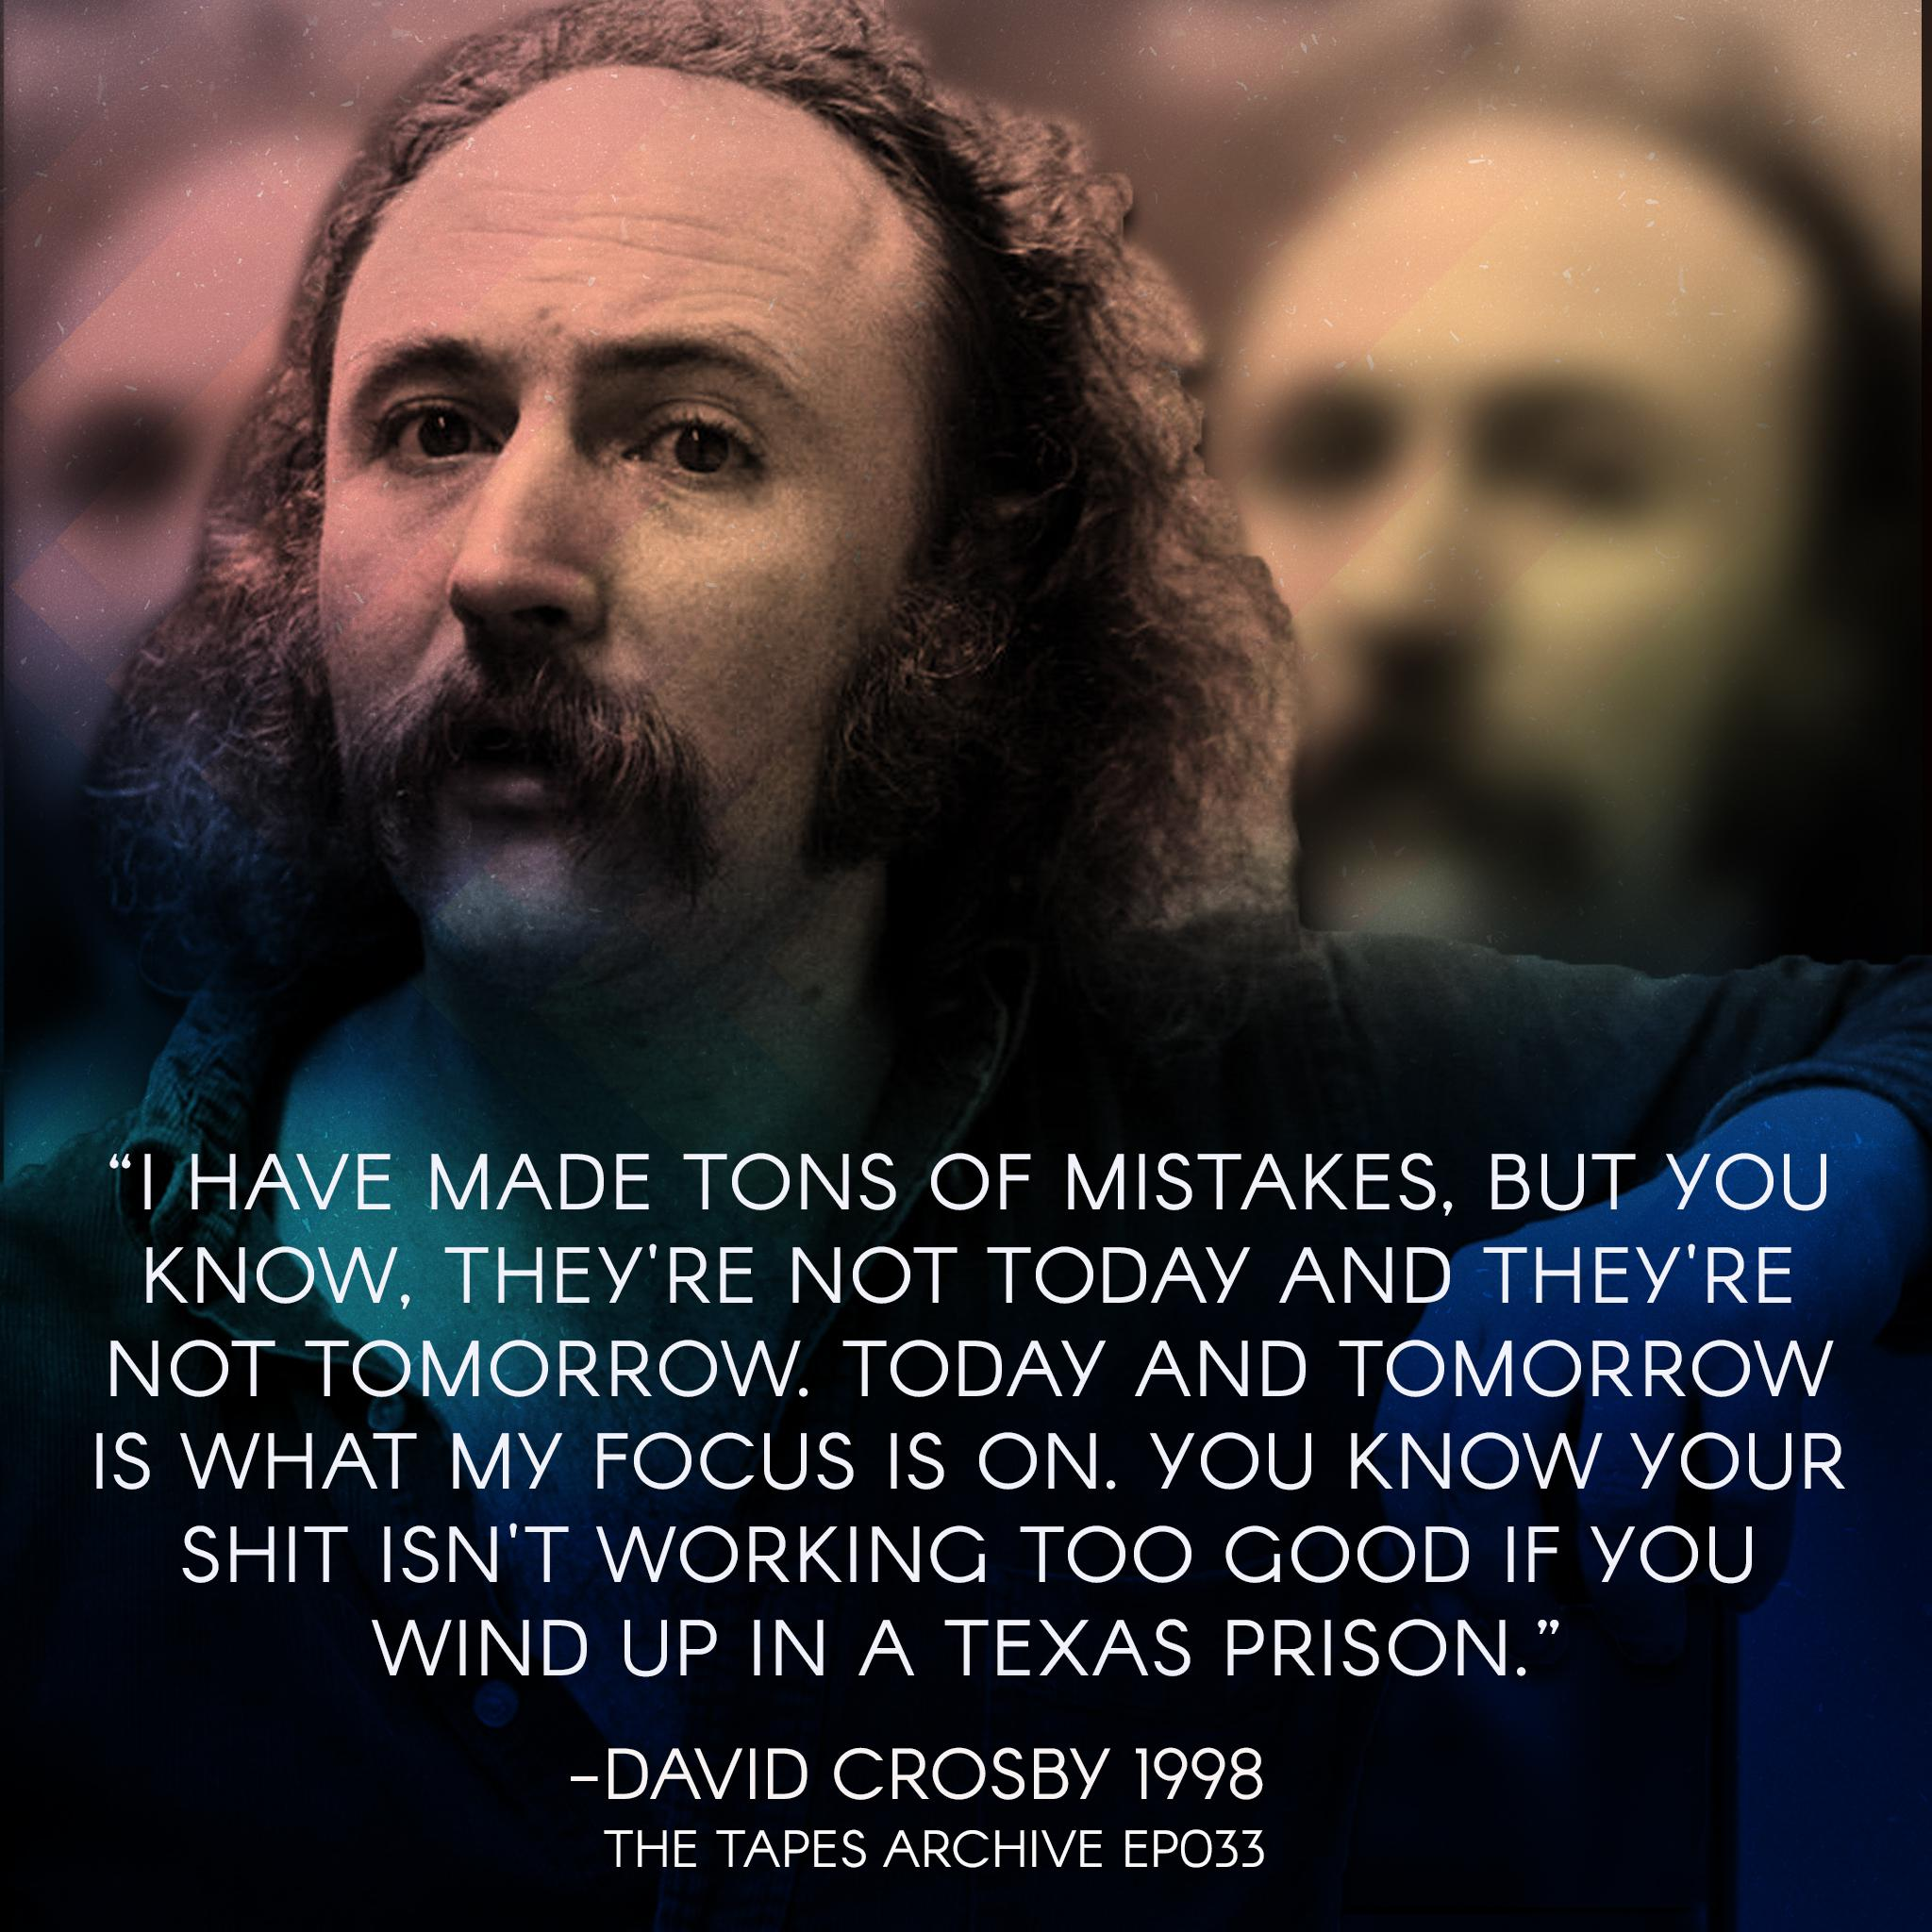 """IS WHAT Focus IS ON. you KNWYOUR SHIT ISN T WORKING TOO GOOD IF you - WIND UP IN A TEXAS PRISON."""" —DAV